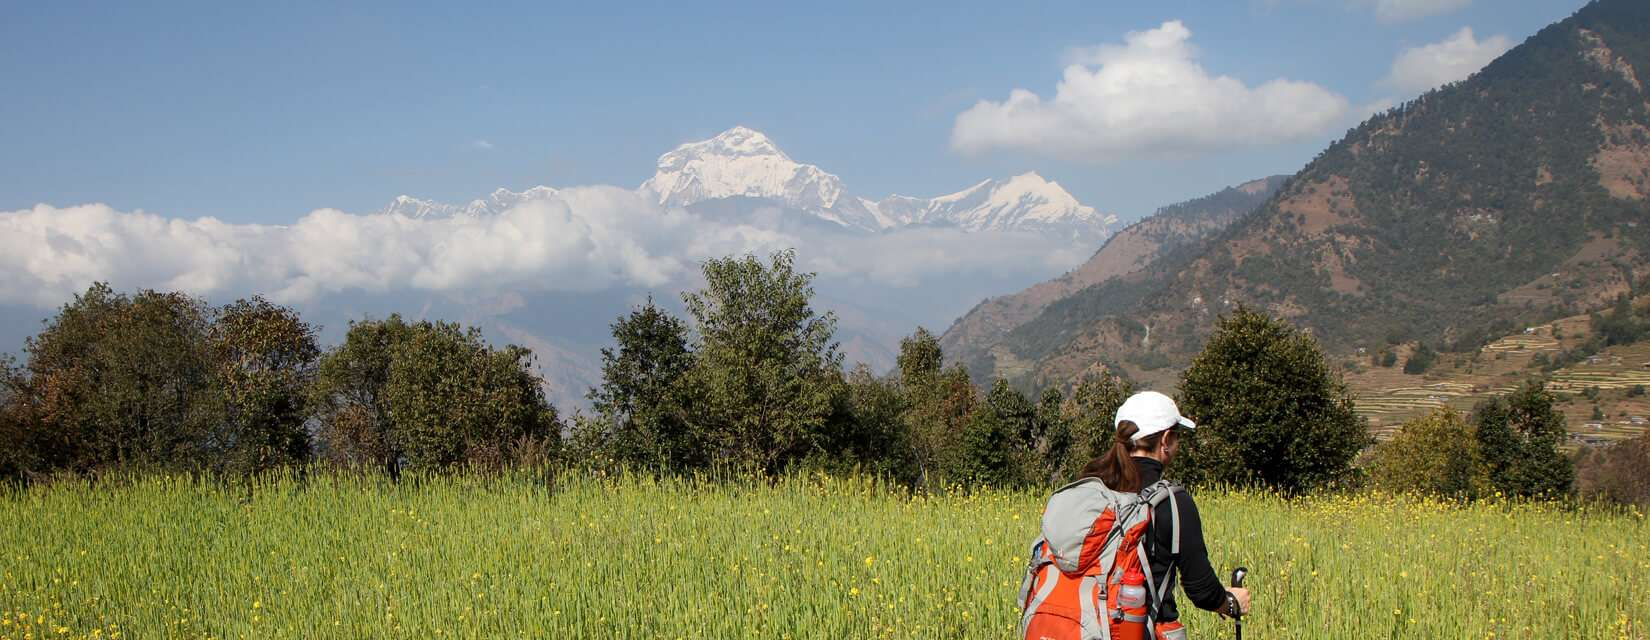 Trek to Annapurna Region